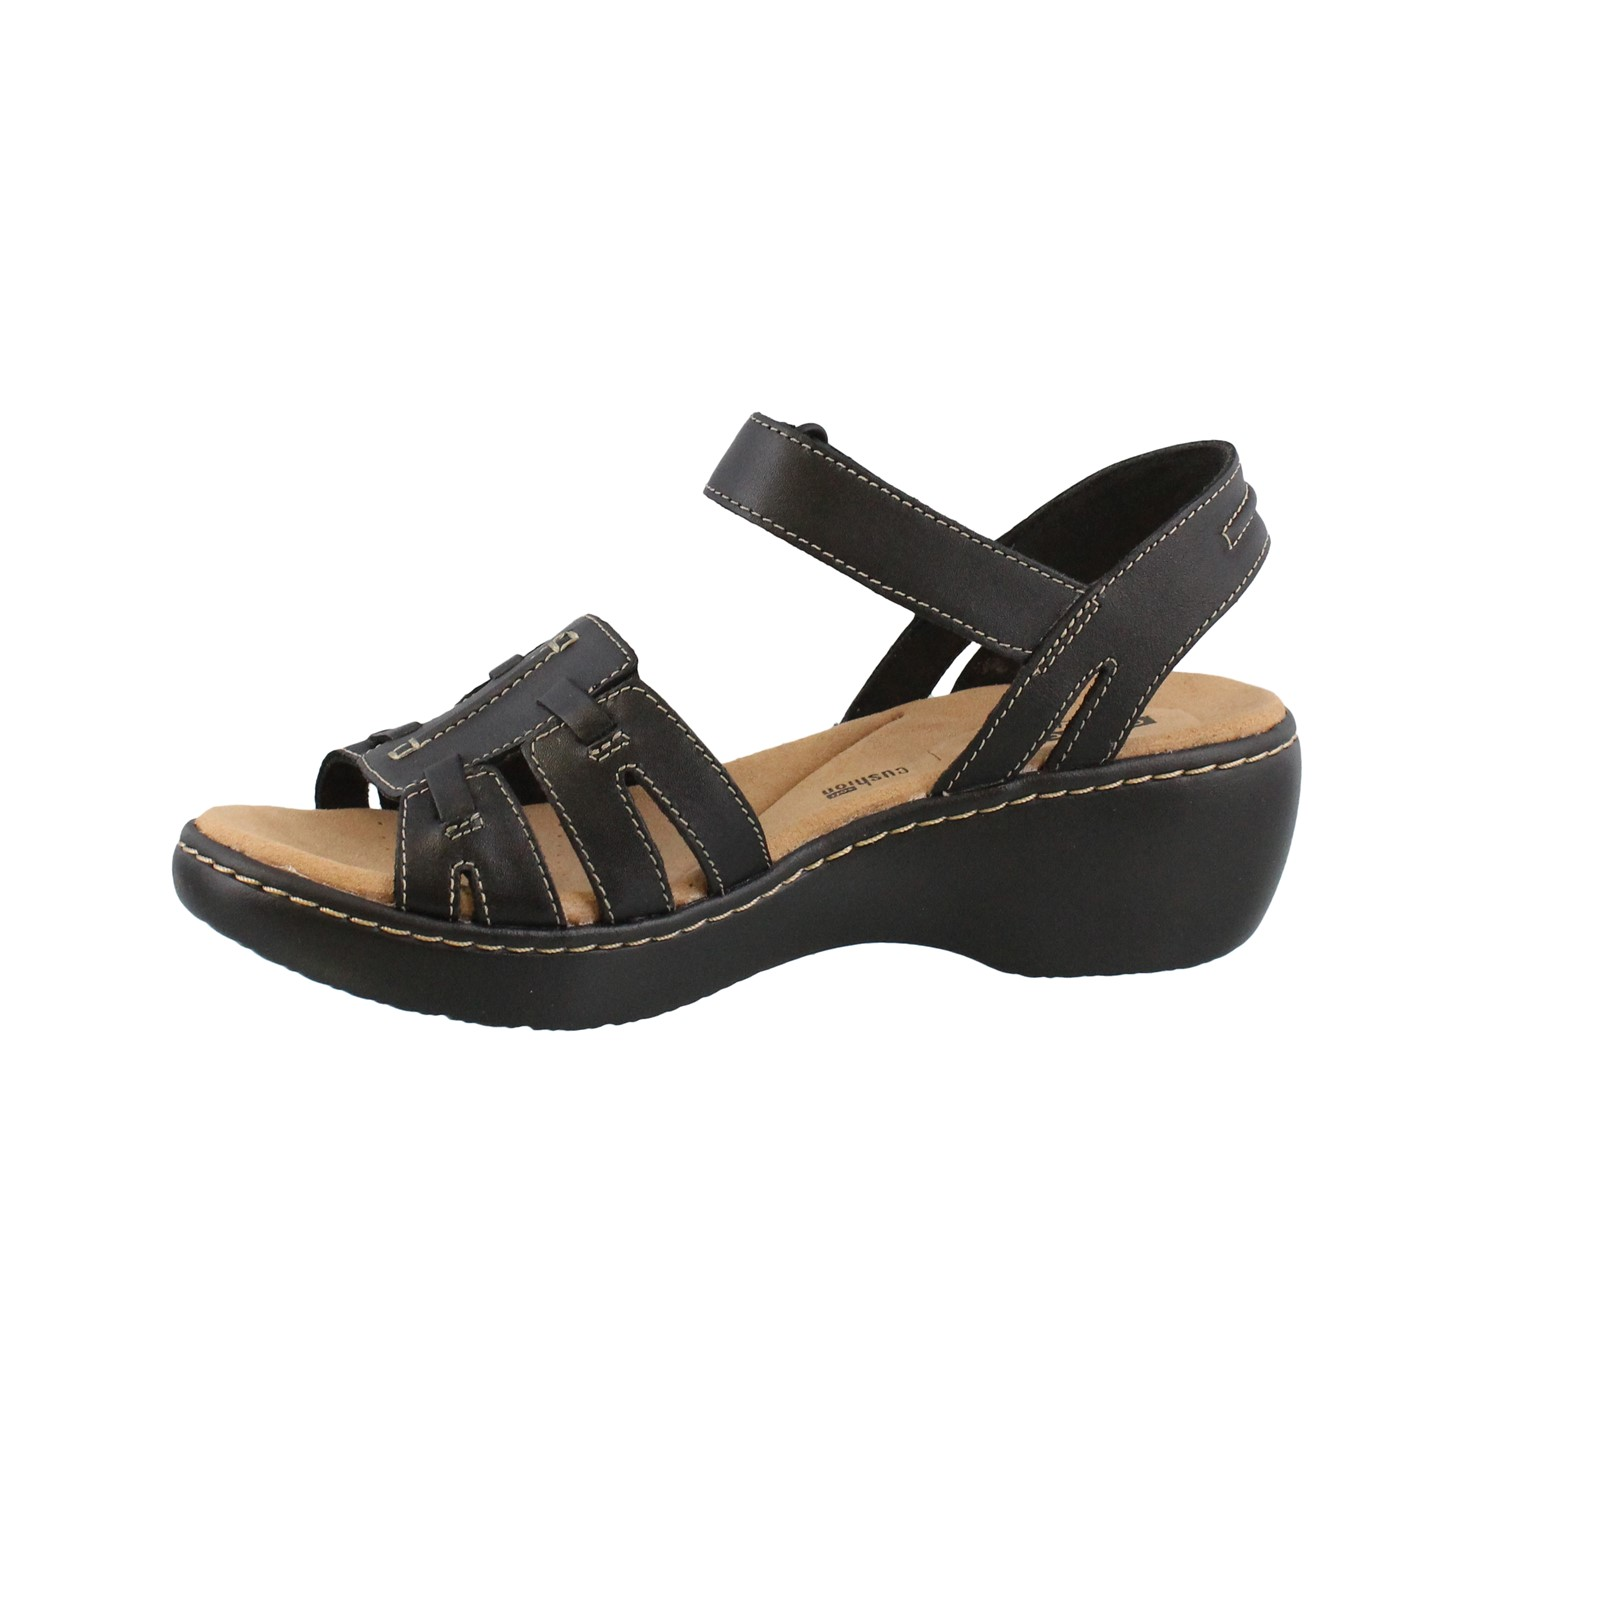 a5f18aae1 Next. add to favorites. Women s Clarks